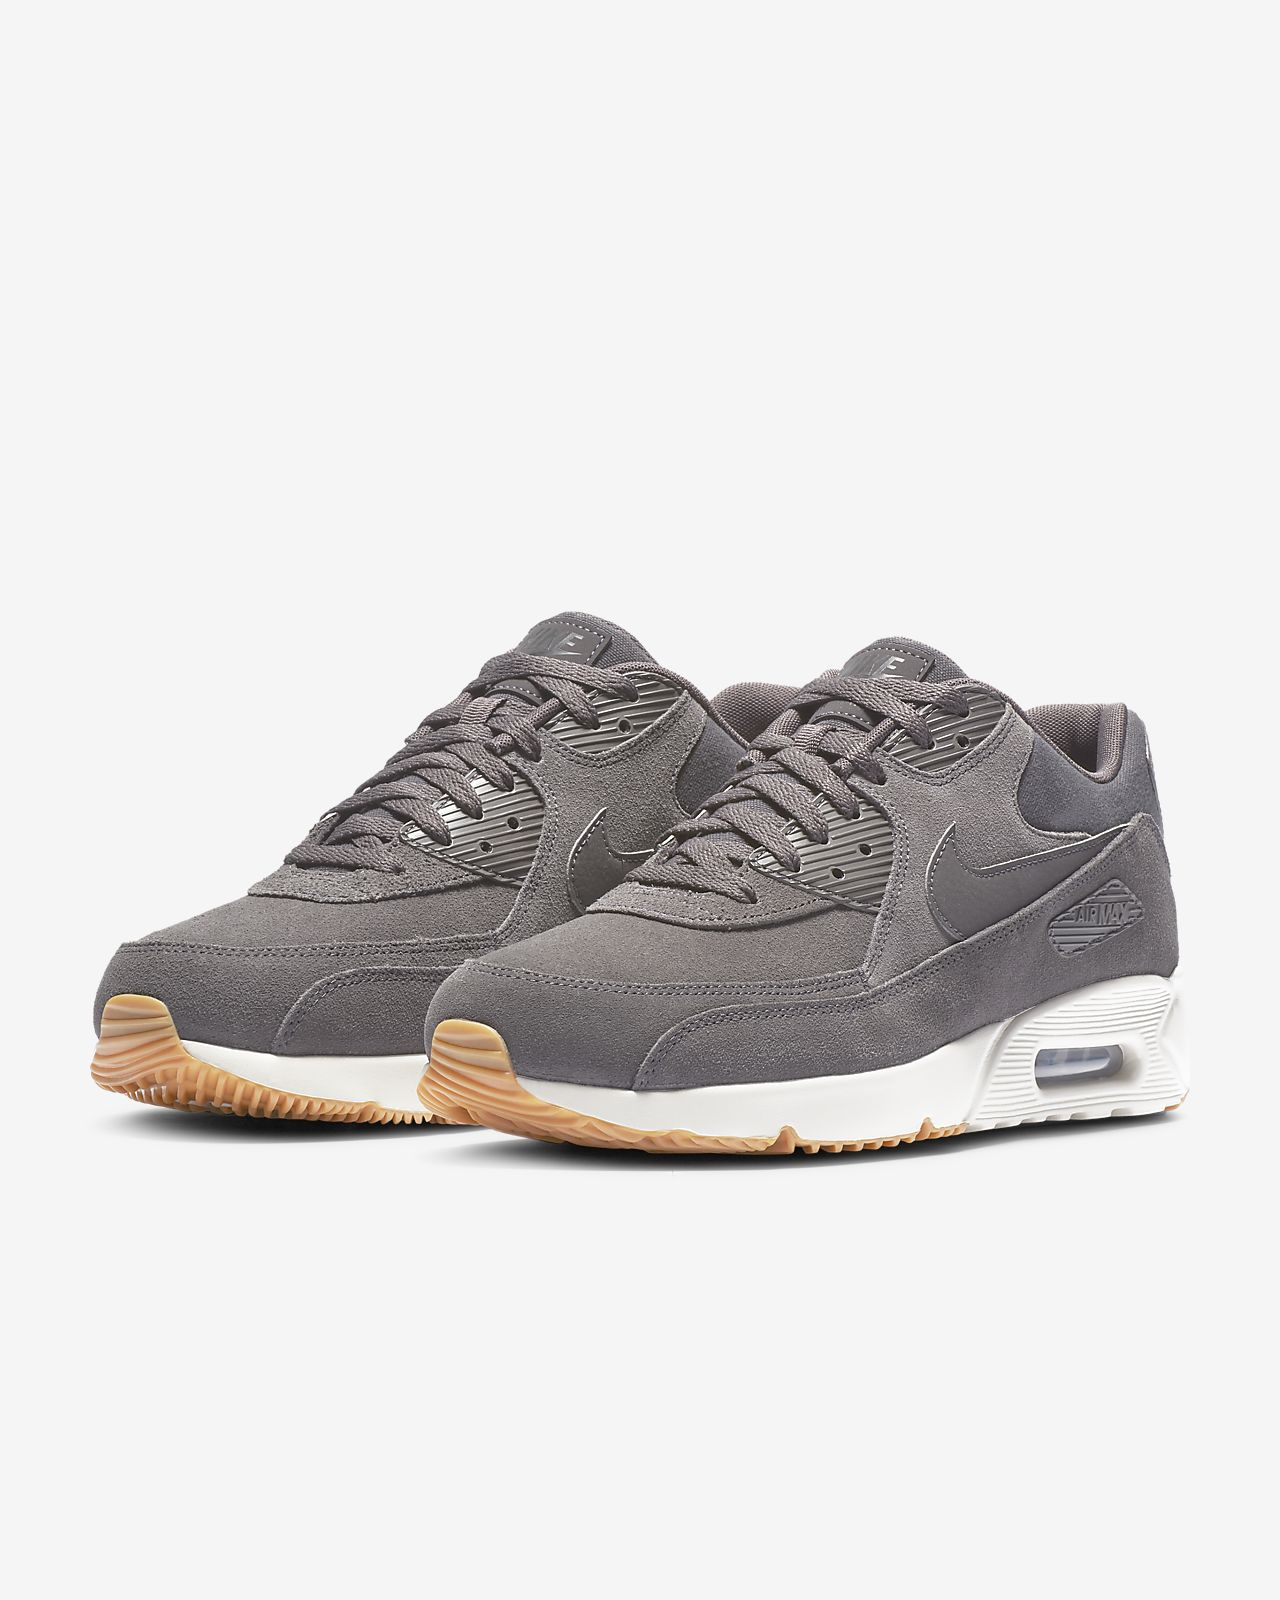 Nike Air Max 90 Essential light bone thunder grey